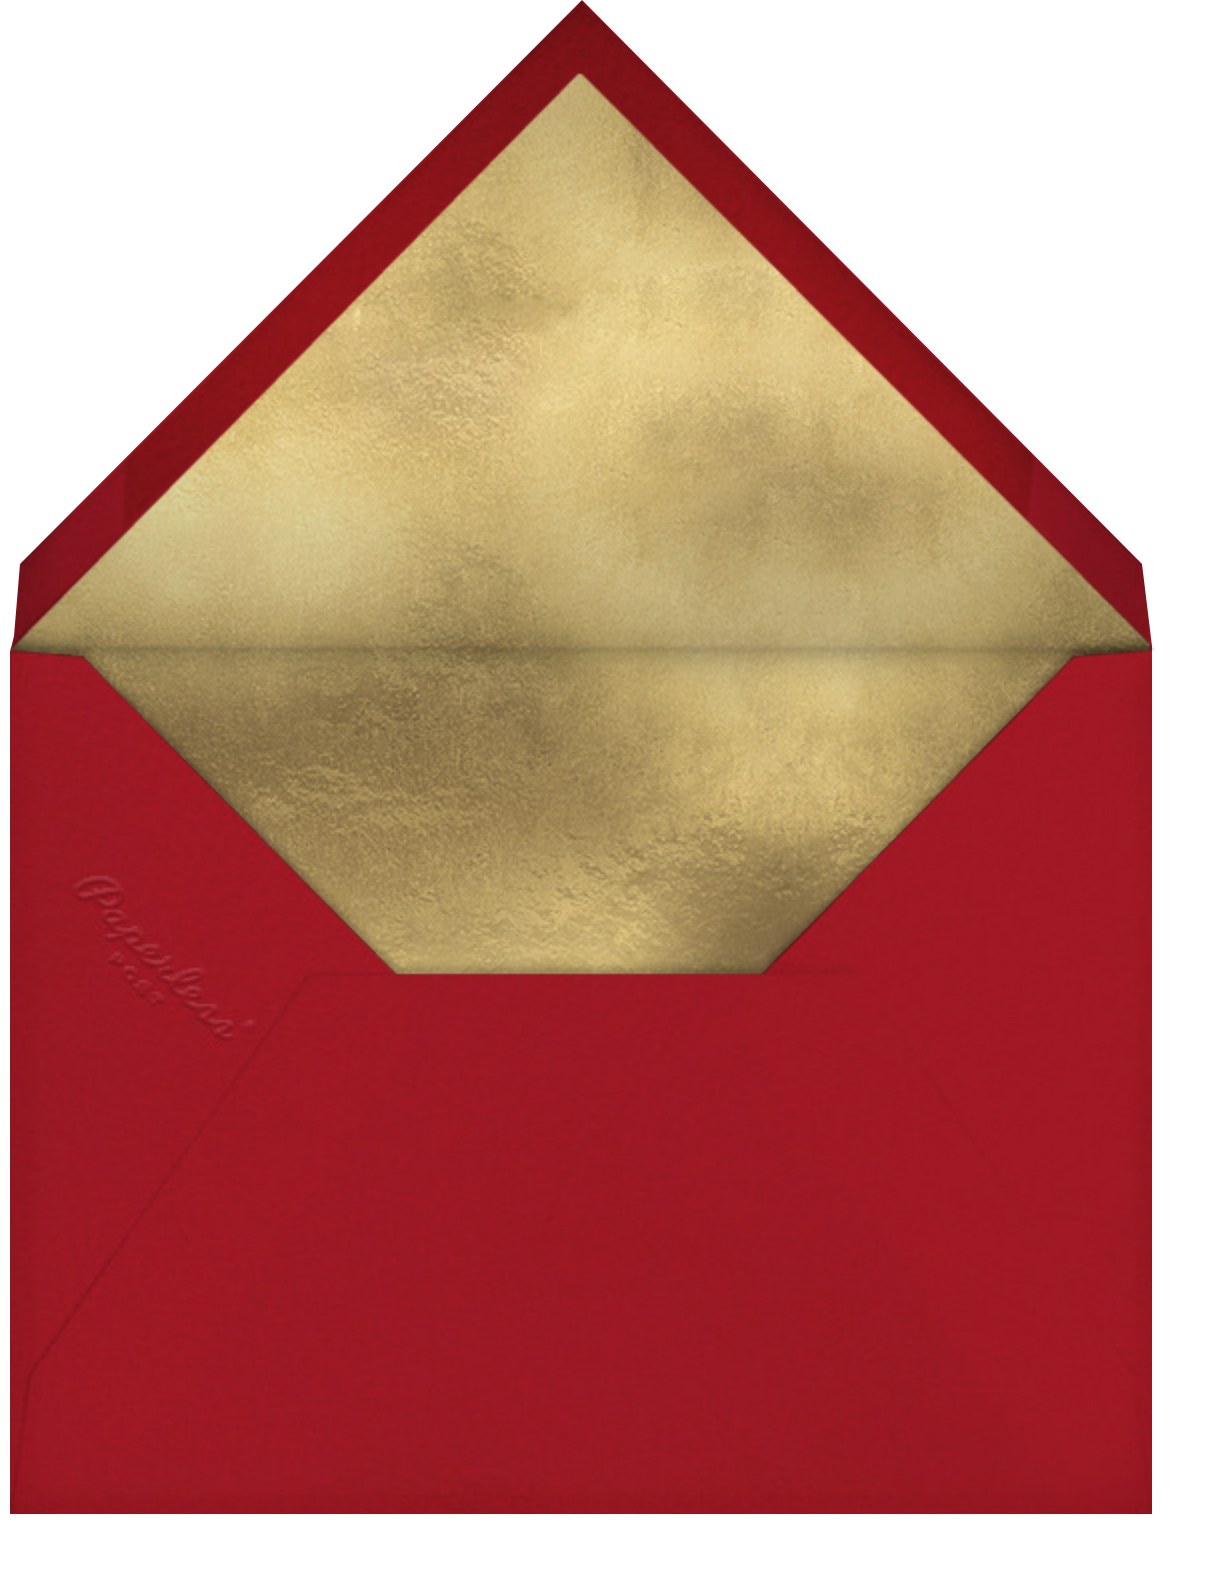 Spirited Script - Virtual - Paperless Post - Corporate invitations - envelope back